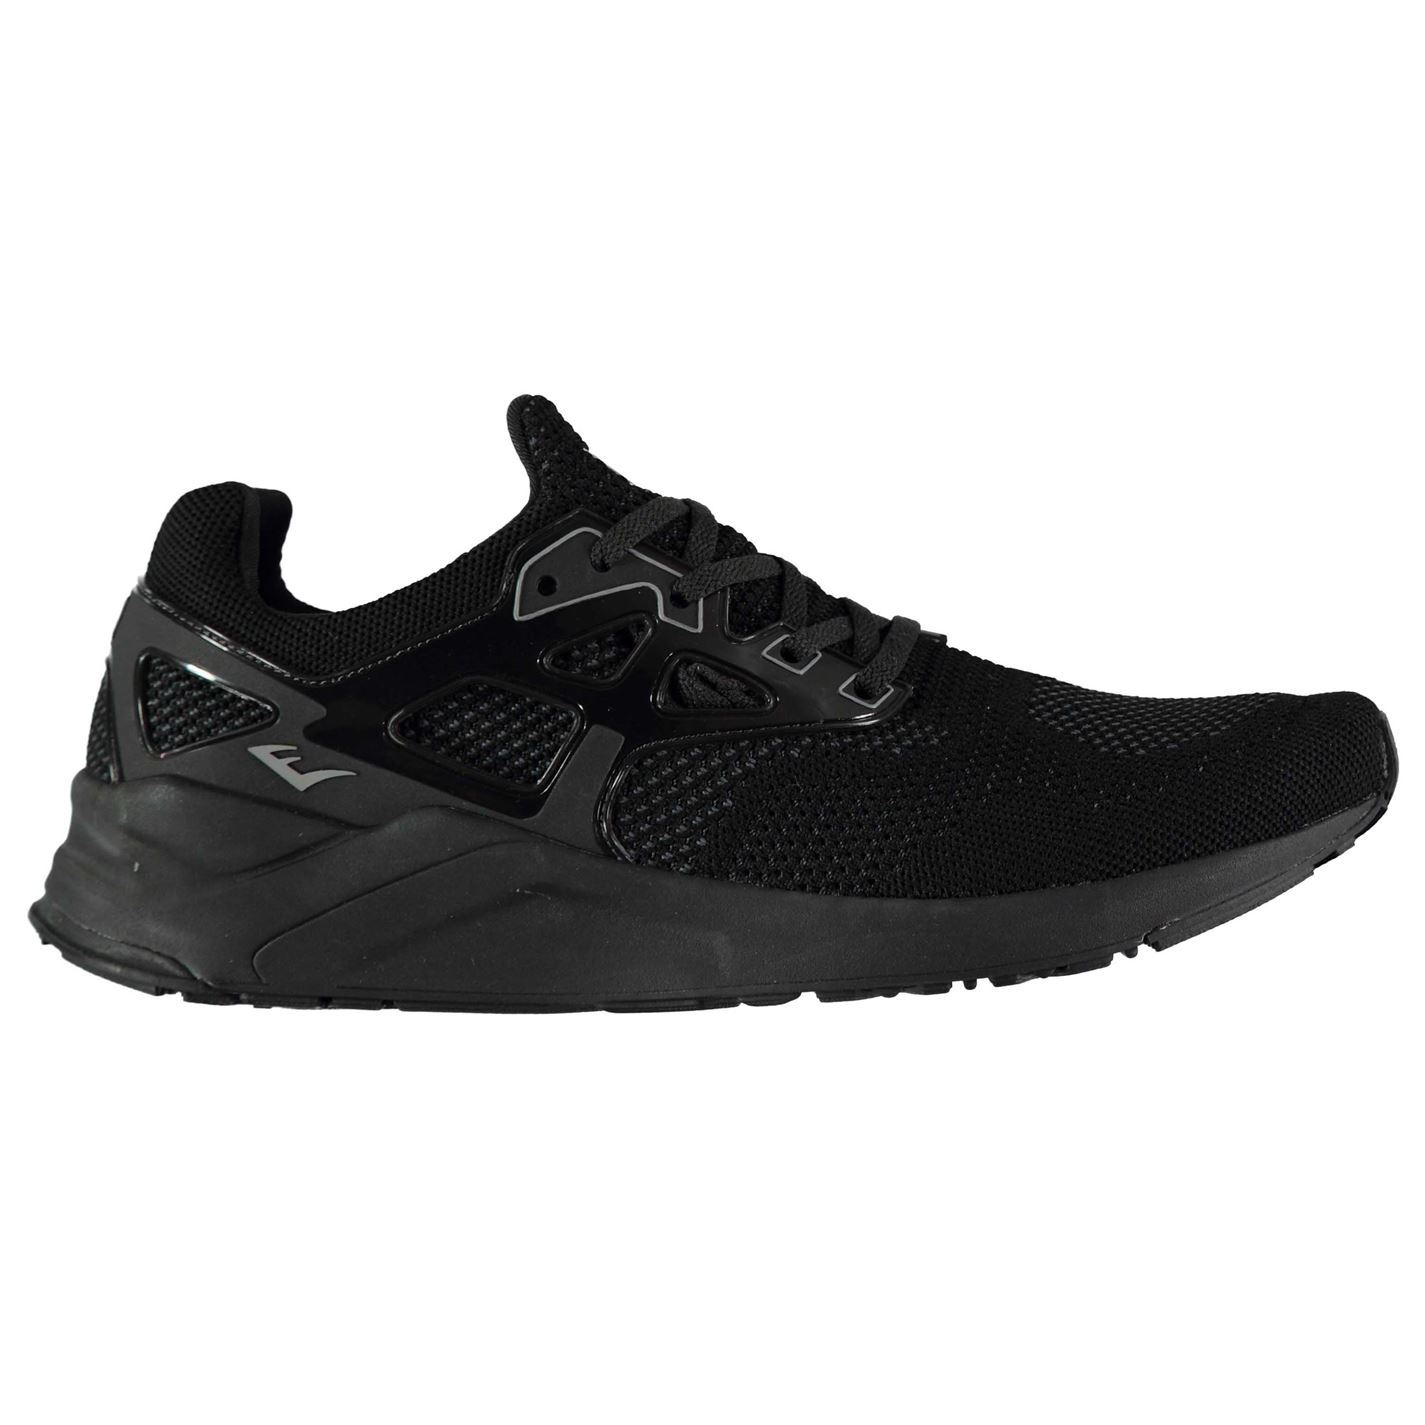 Everlast-Mens-Tanto-Knit-Trainers-Runners-Shoes-Lace-